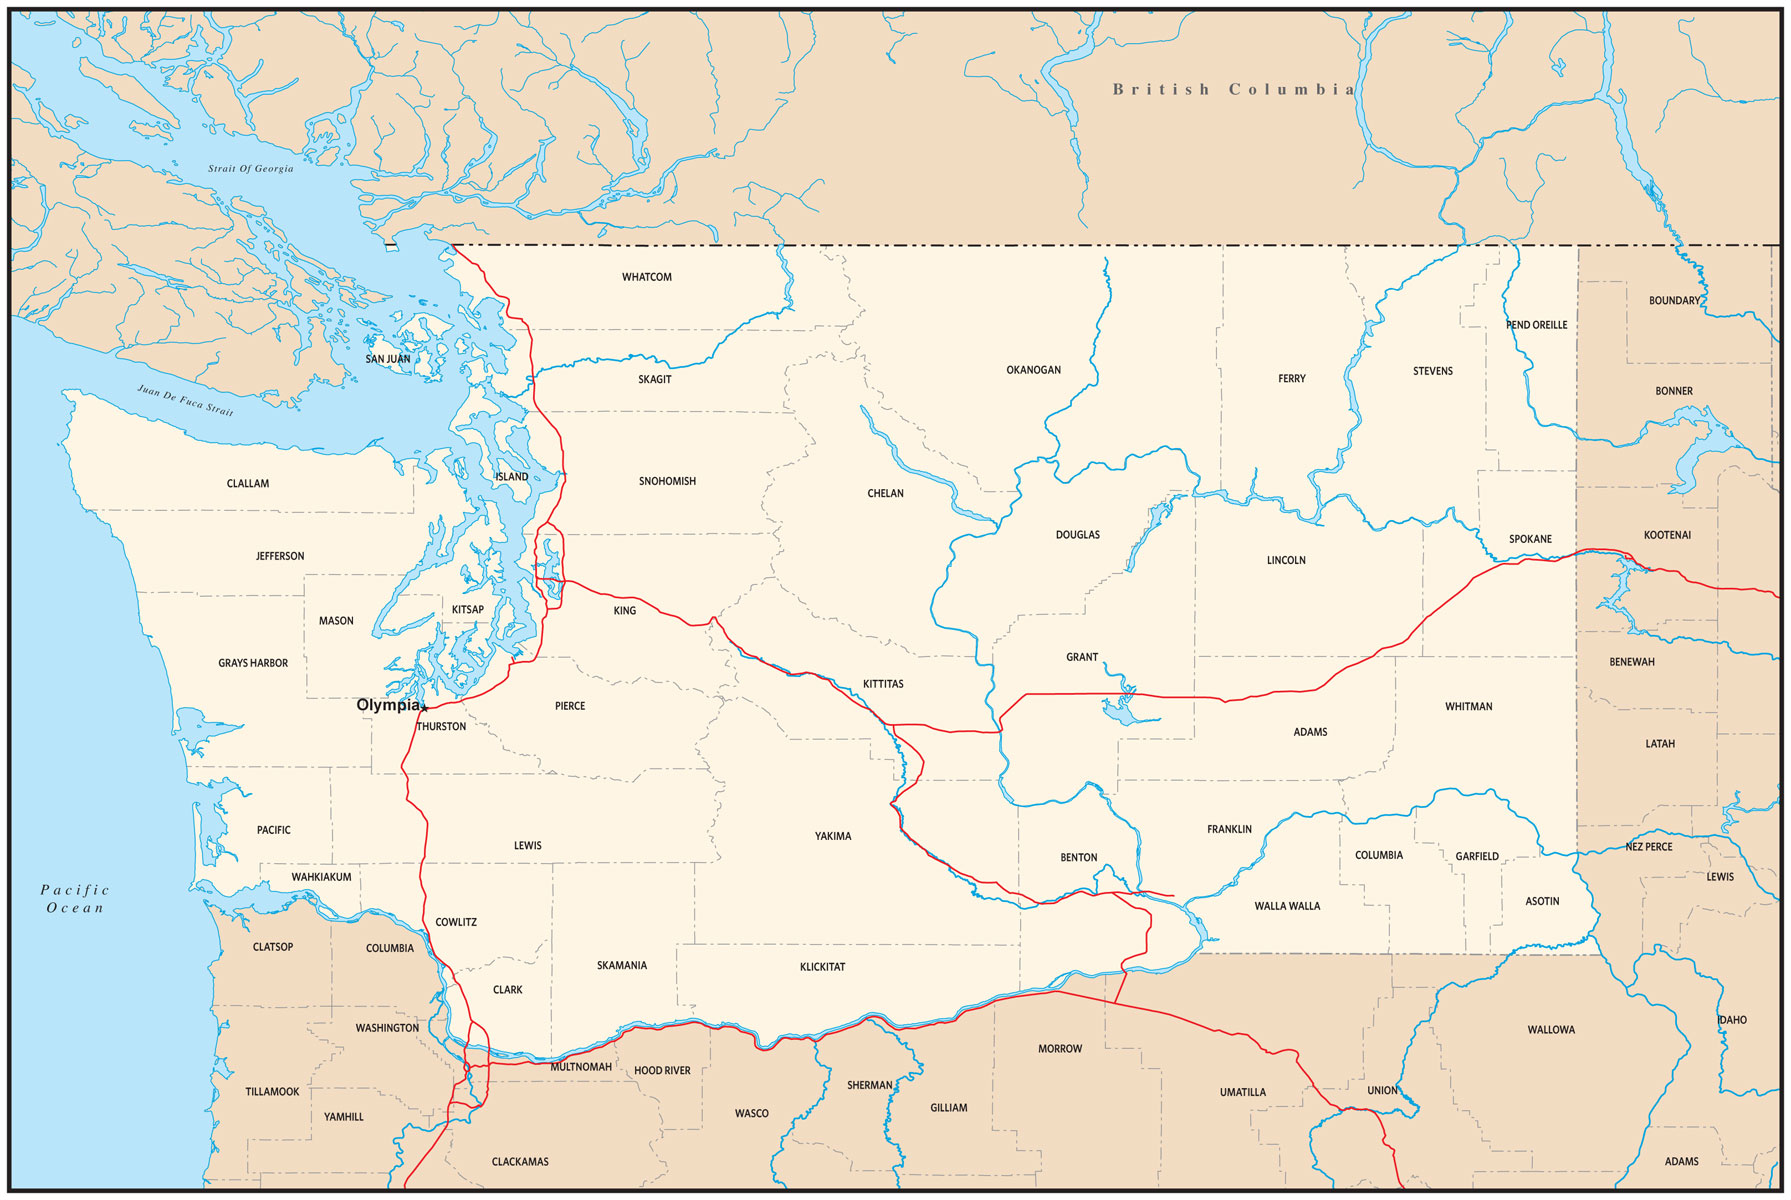 Image pacific northwest clipart map graphic download Outline Map Of Pacific Northwest With Image Clipart ~ Free ... graphic download